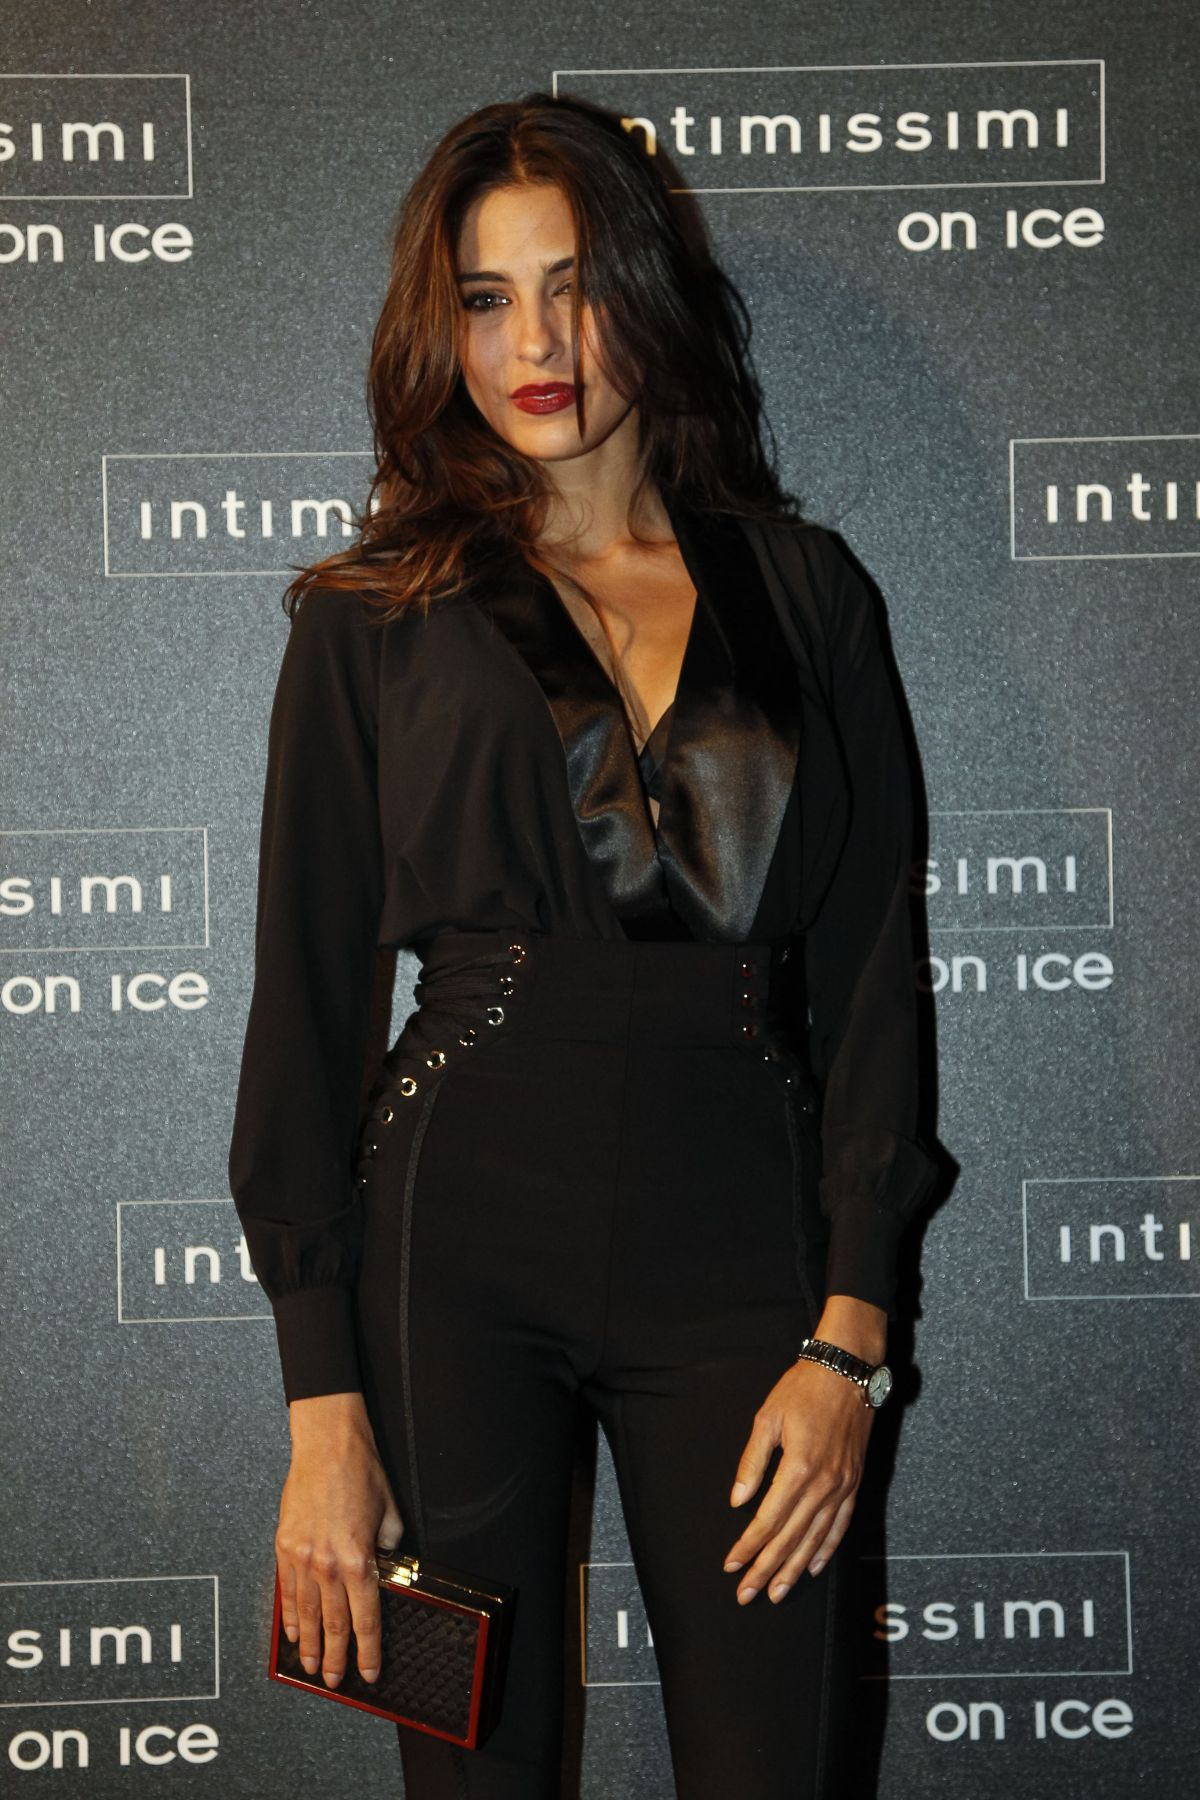 ARIADNA ROMERO at Intimissimi on Ice 2015 Gala in Verona 10/09/2015